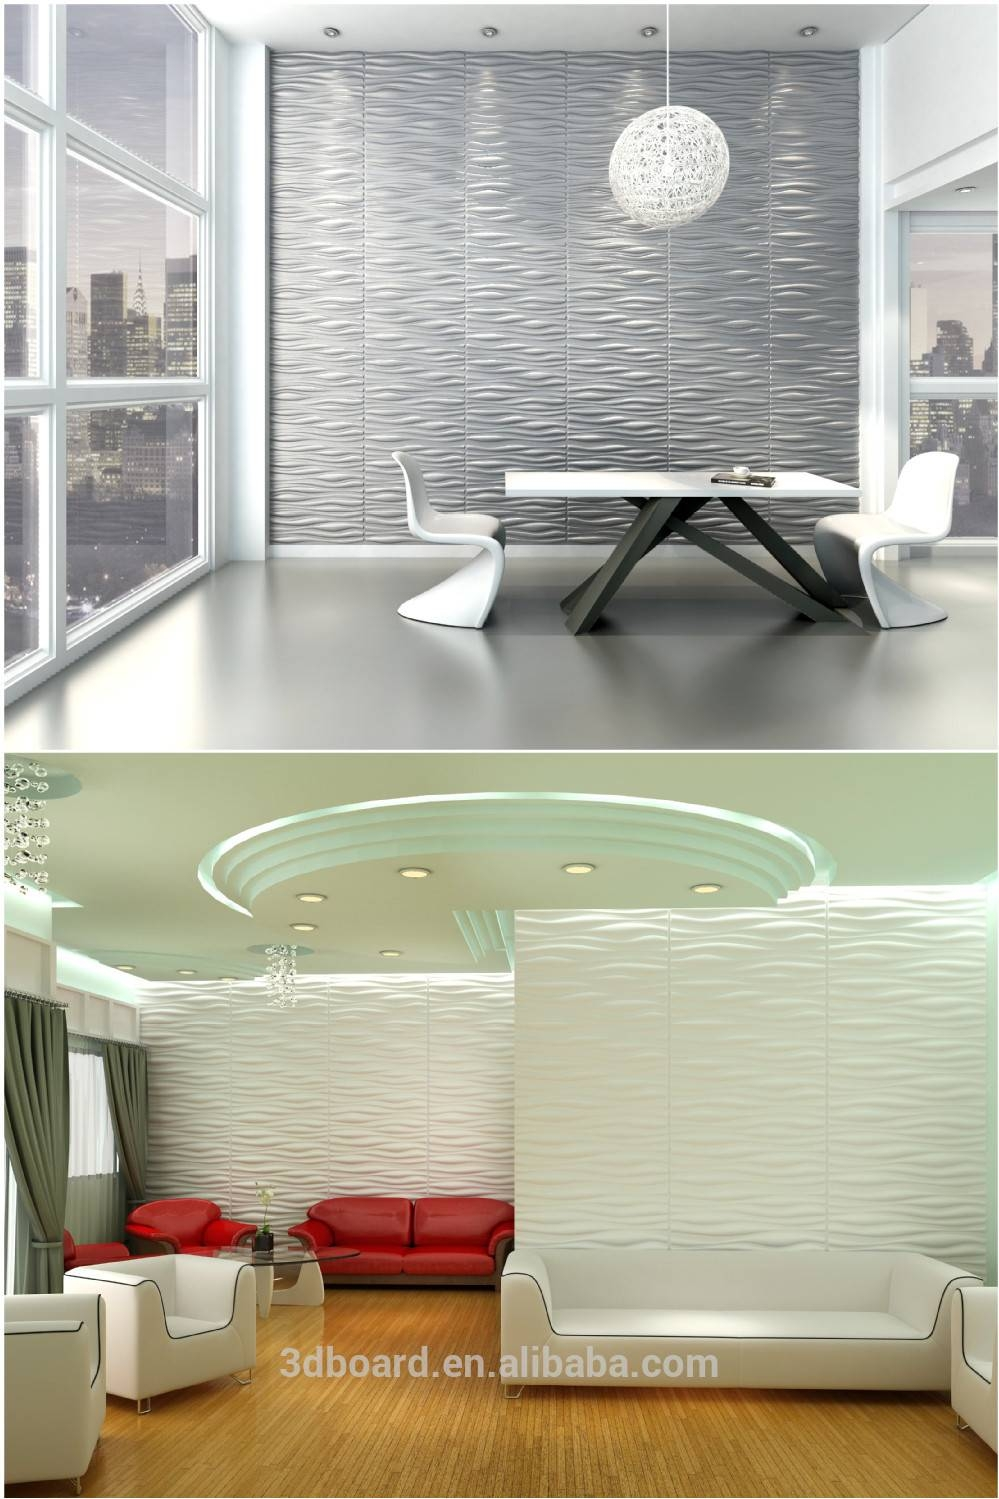 Clear Plastic Interior 3d Textured Wall Panels Plant Fiver Wall 3d Within Current 3d Plastic Wall Panels (View 14 of 20)